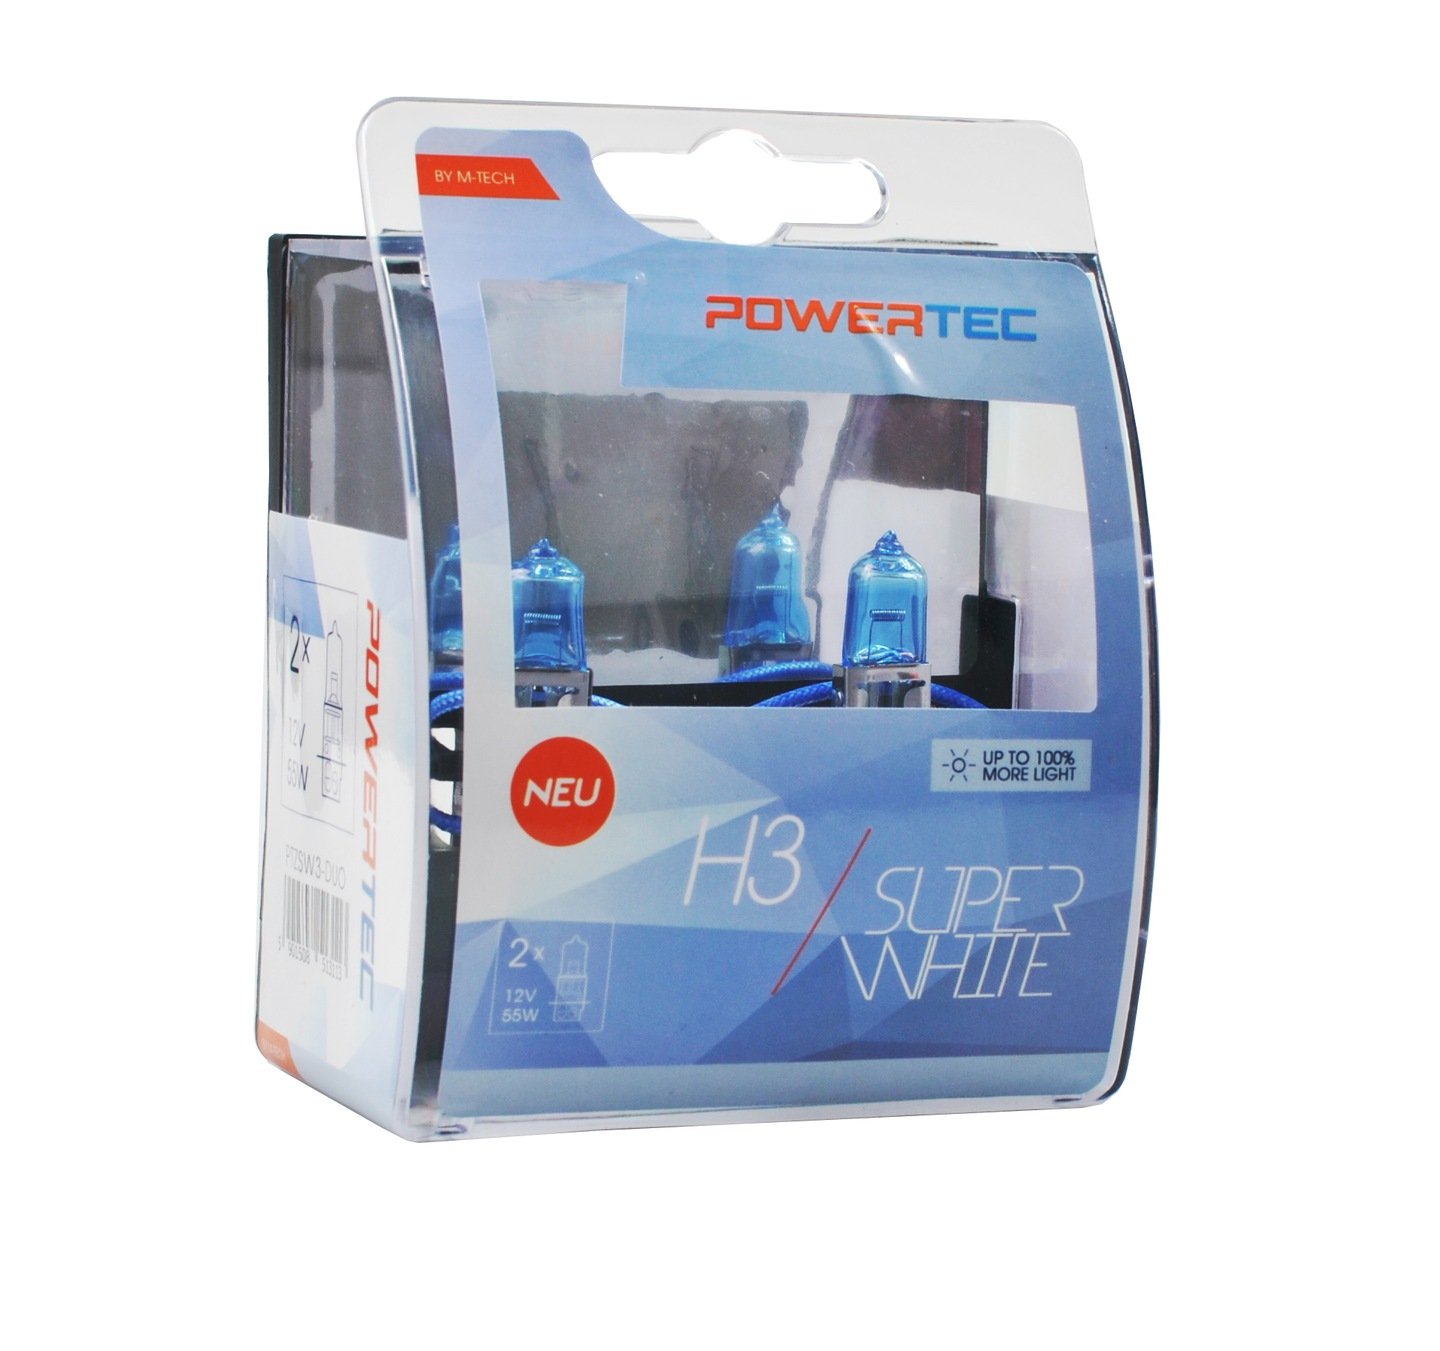 Powertec SuperWhite H3 12V DUO Jak LED